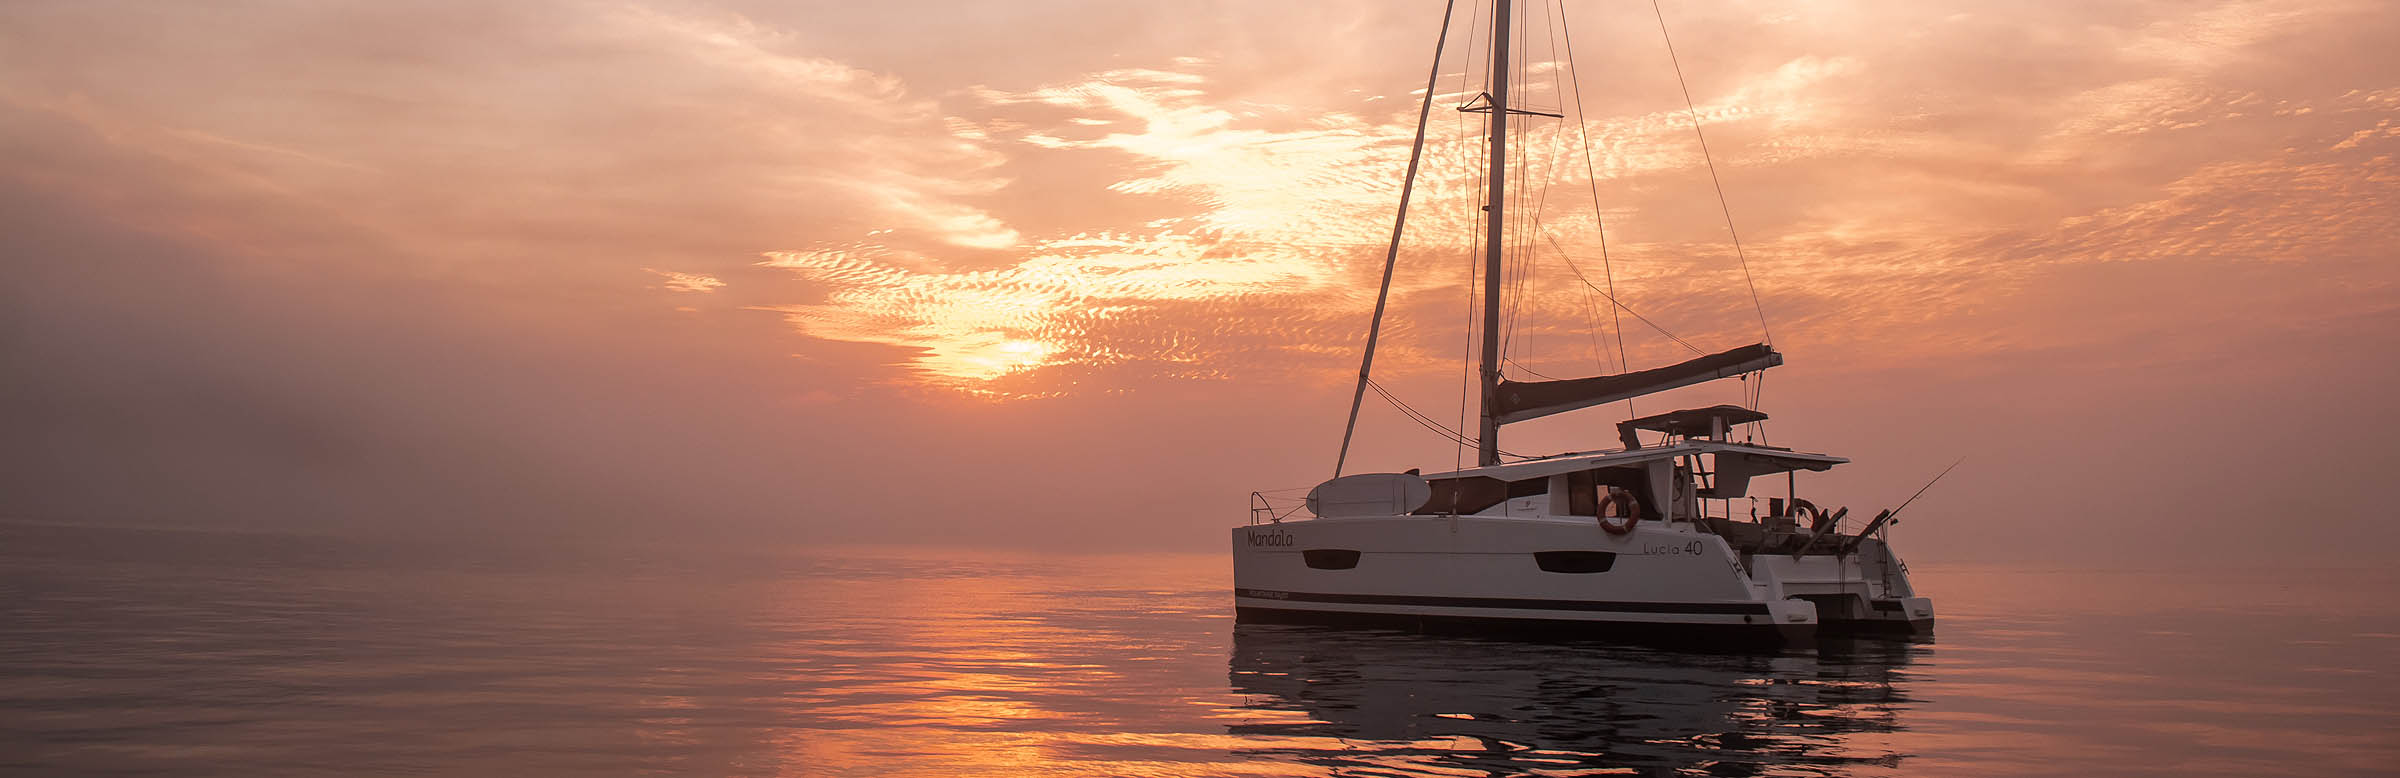 Whitsunday Honeymoon Package | Charter Yachts Australia